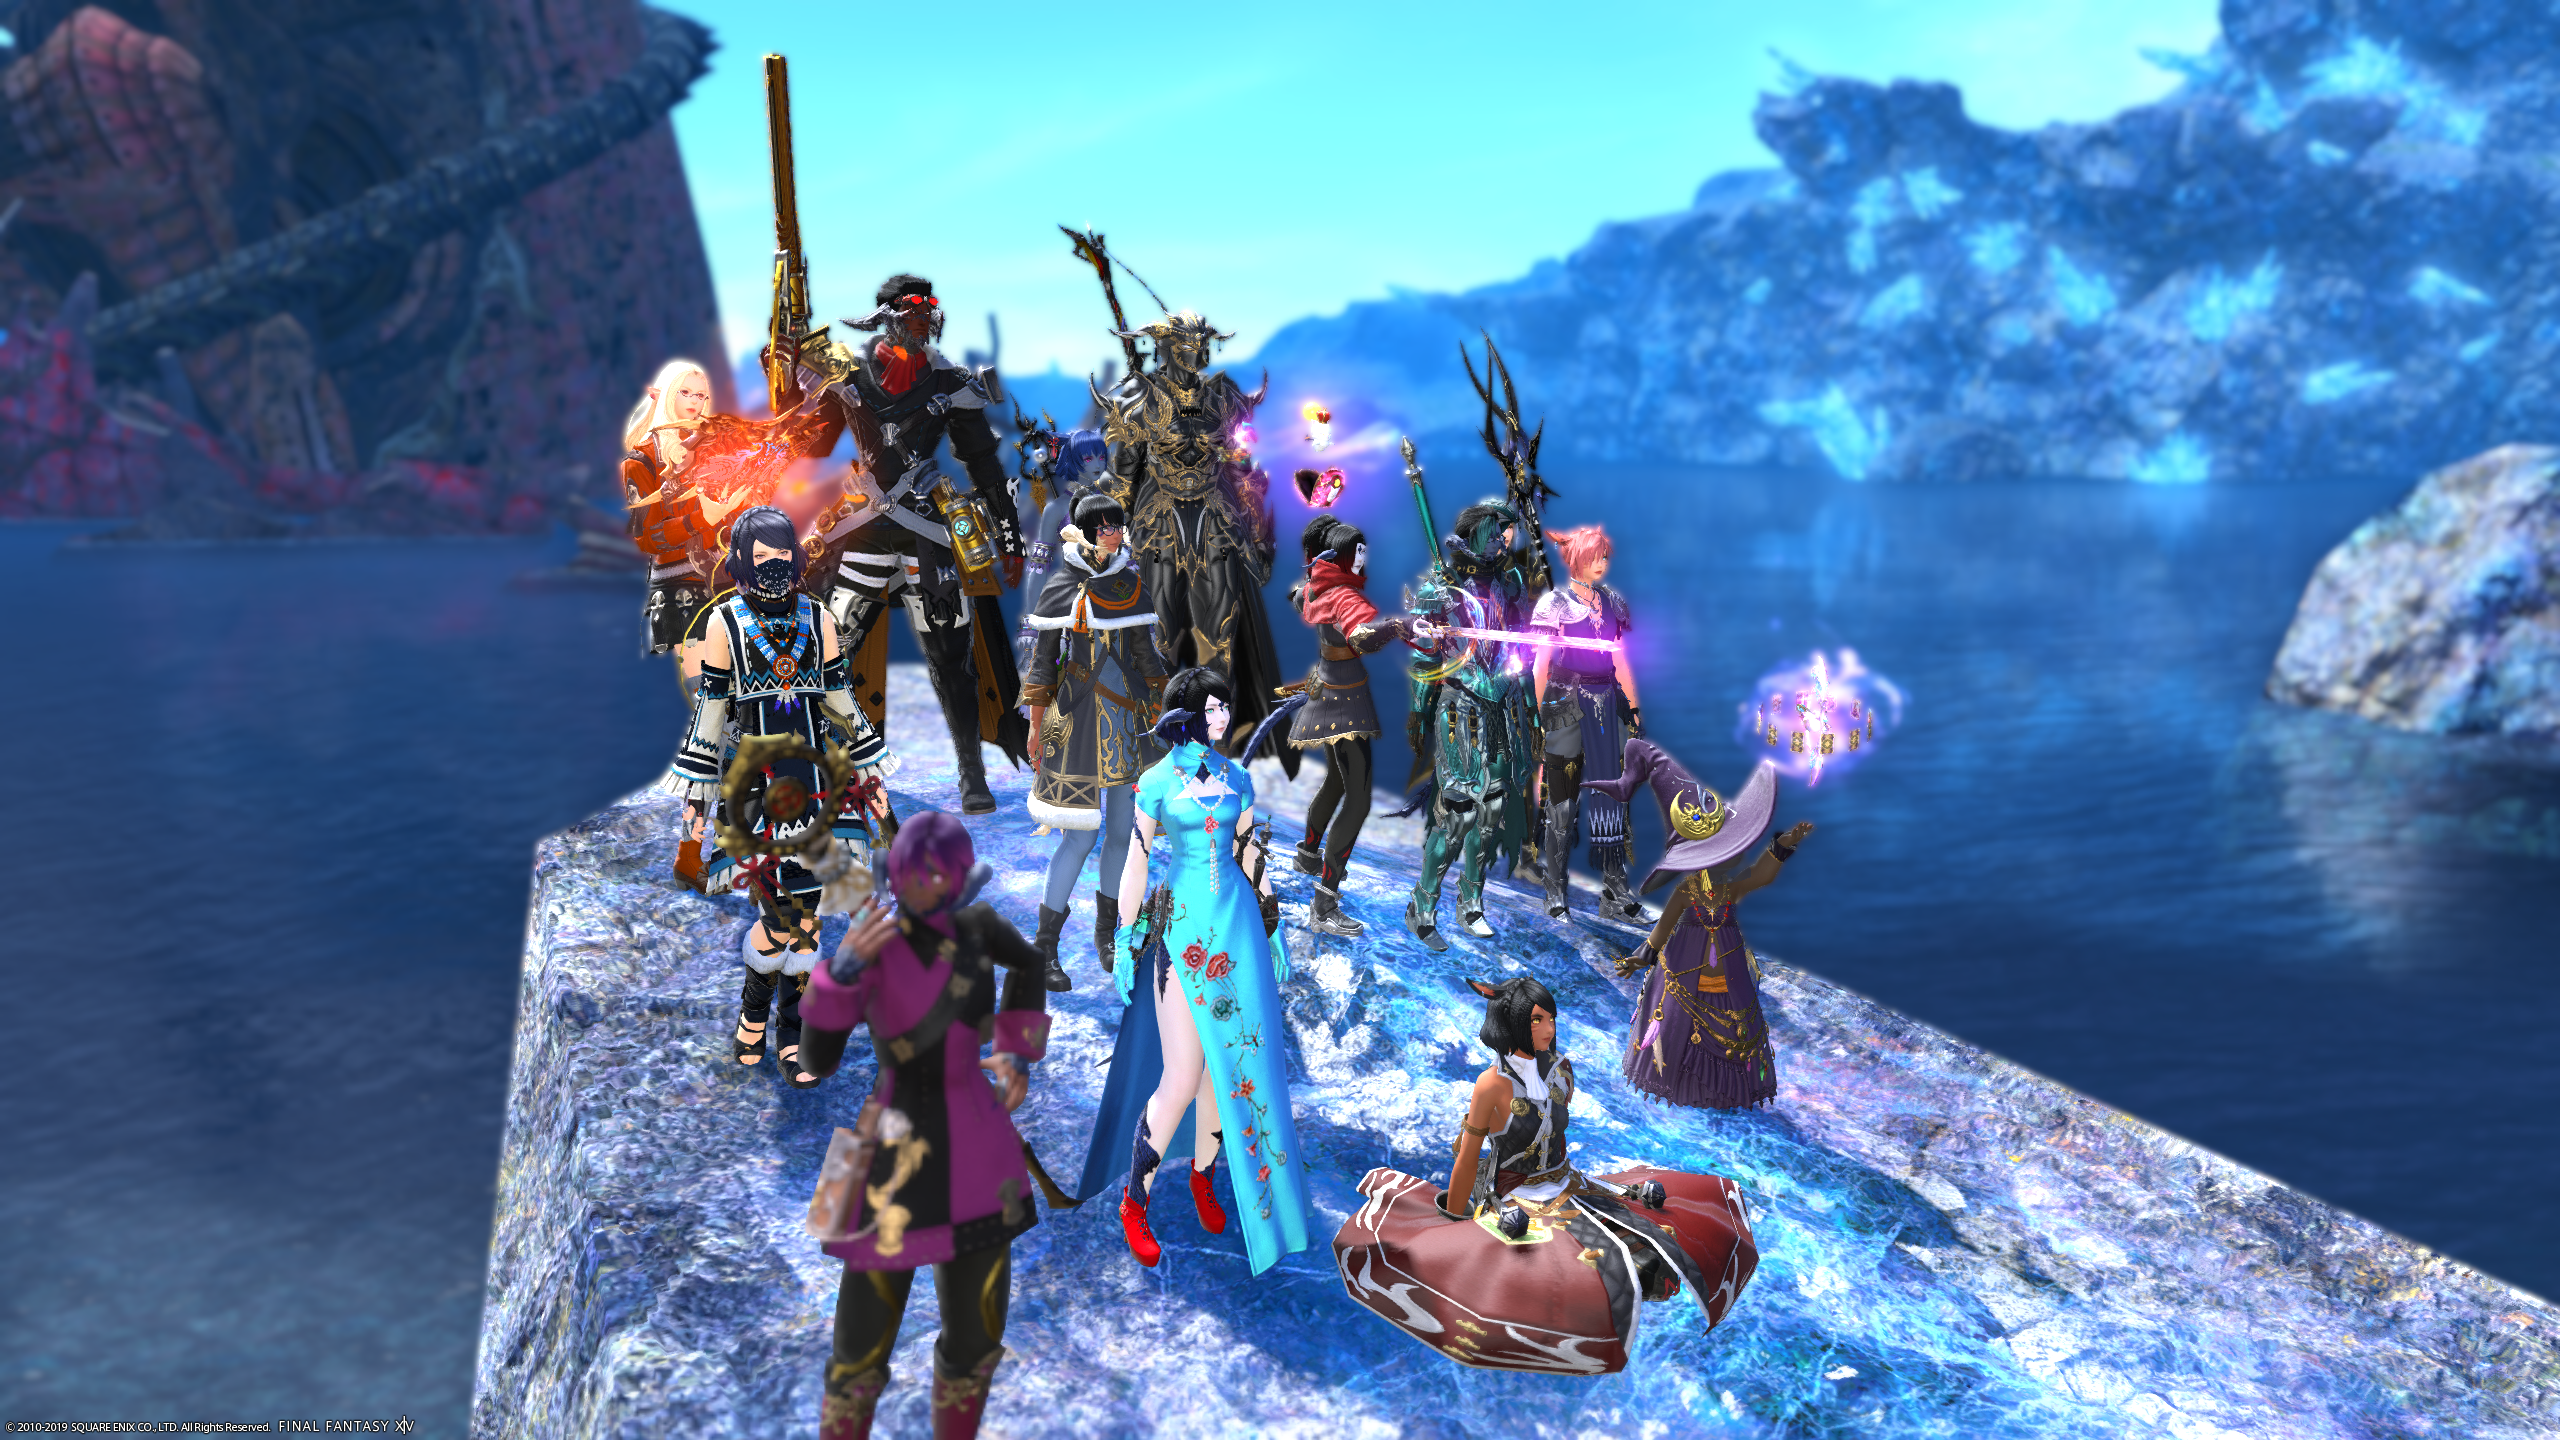 FINAL FANTASY XIV: Shadowbringers - The Something Awful Forums